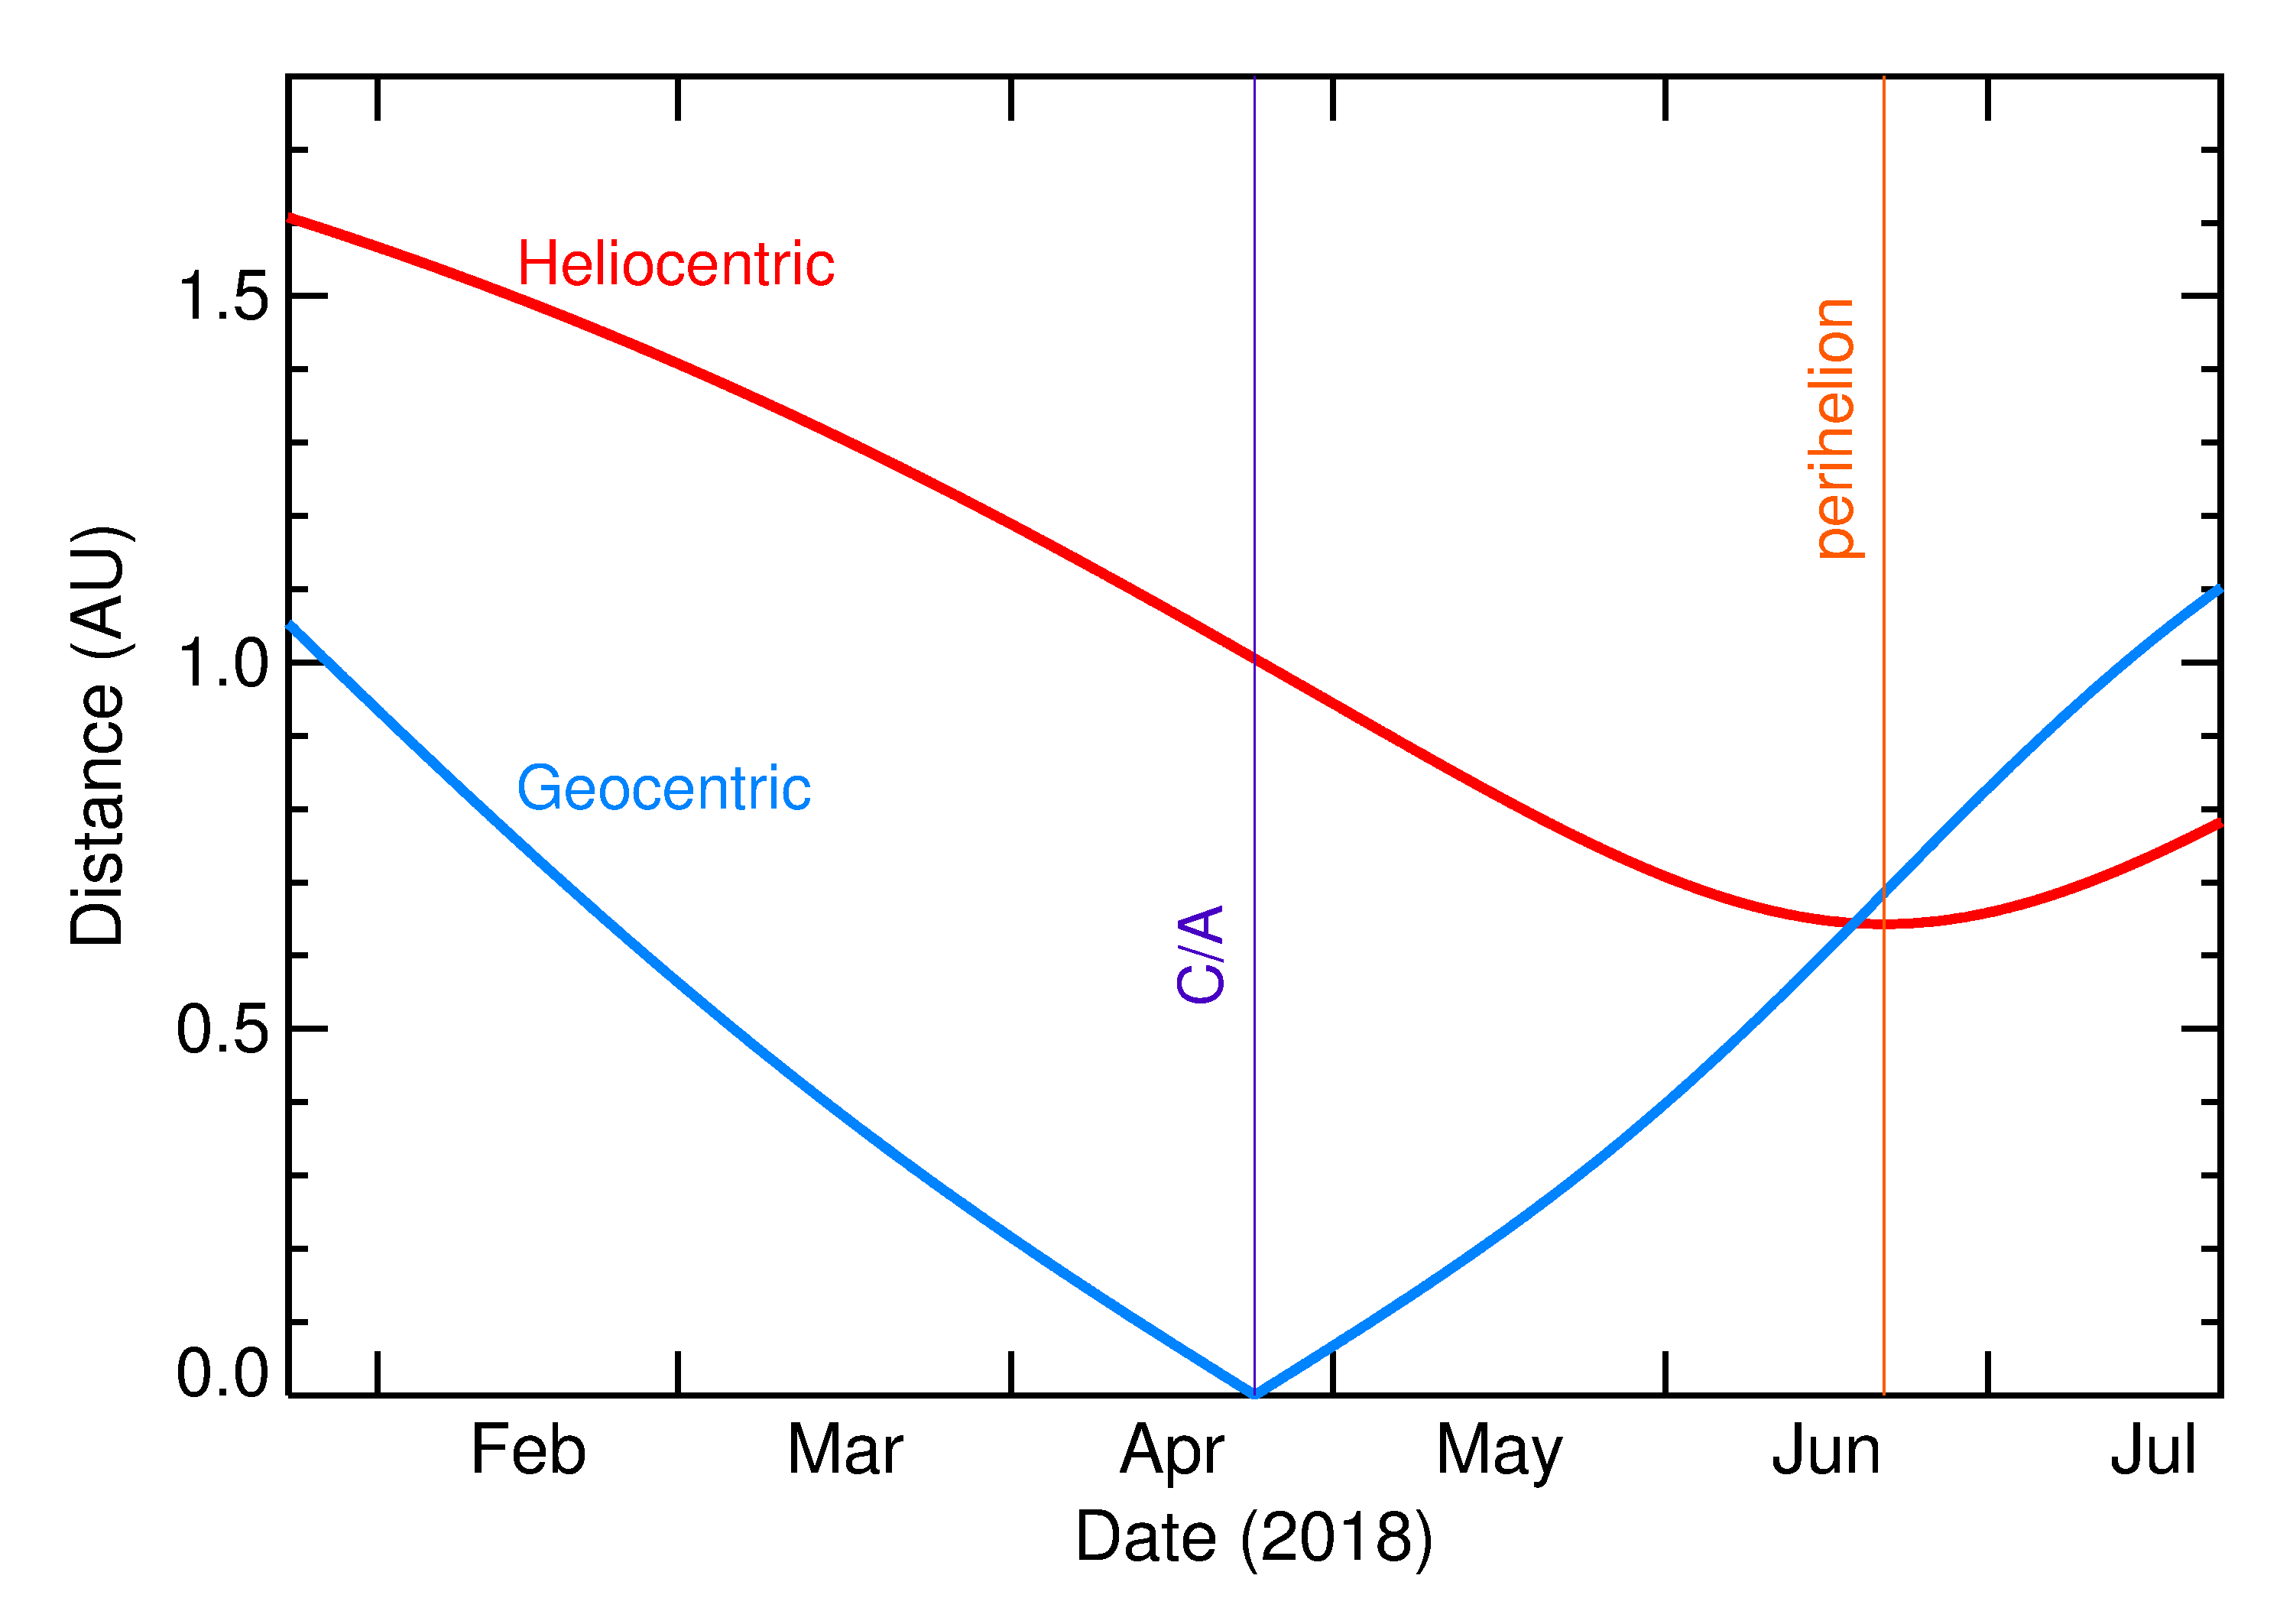 Heliocentric and Geocentric Distances of 2018 HV in the months around closest approach